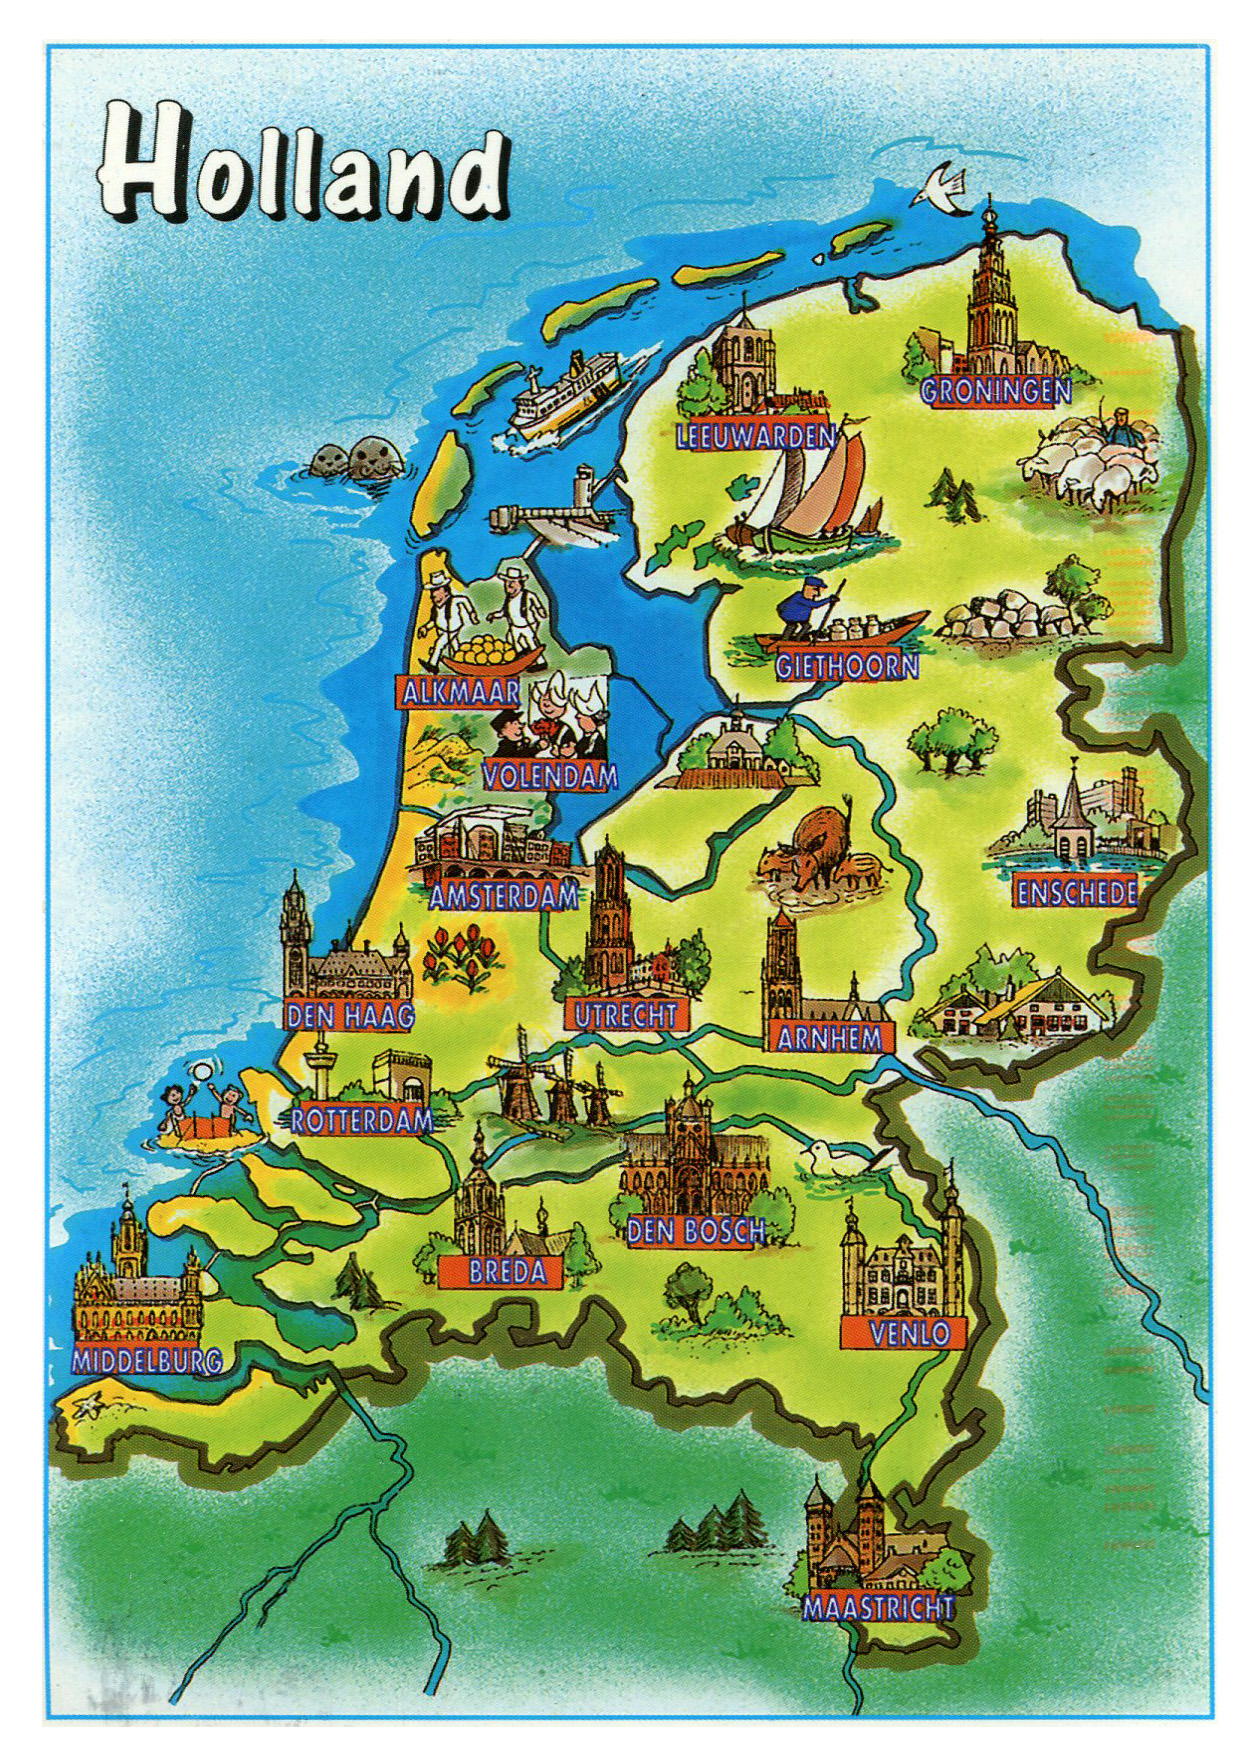 Large tourist illustrated map of Holland Vidianicom Maps of all